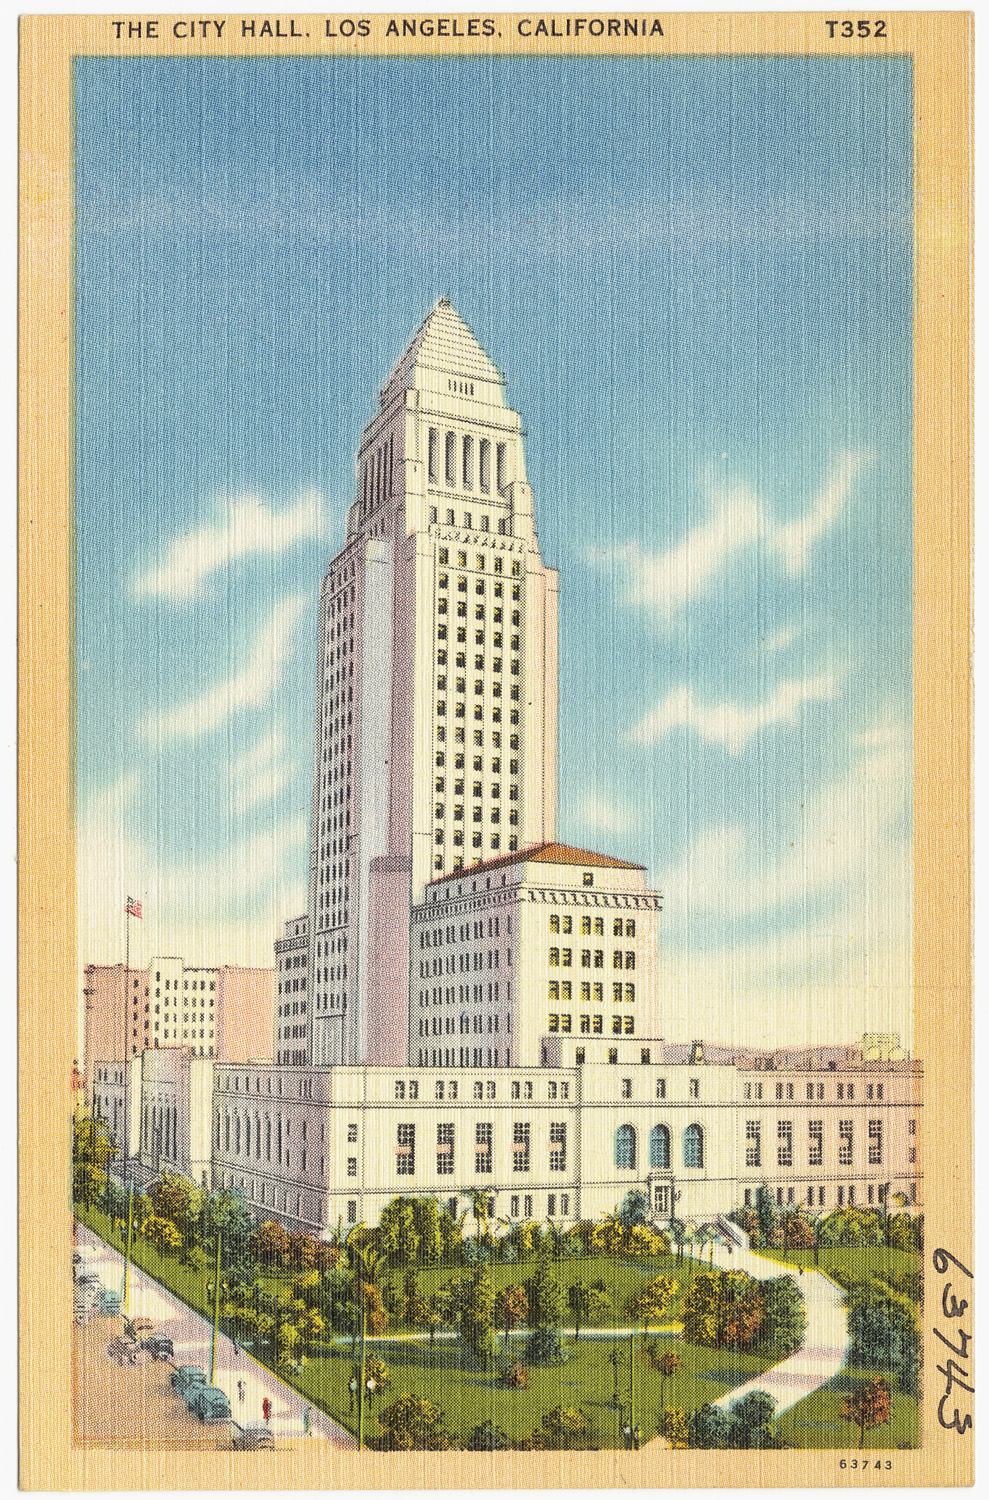 Vintage postcard showing L.A. city hall